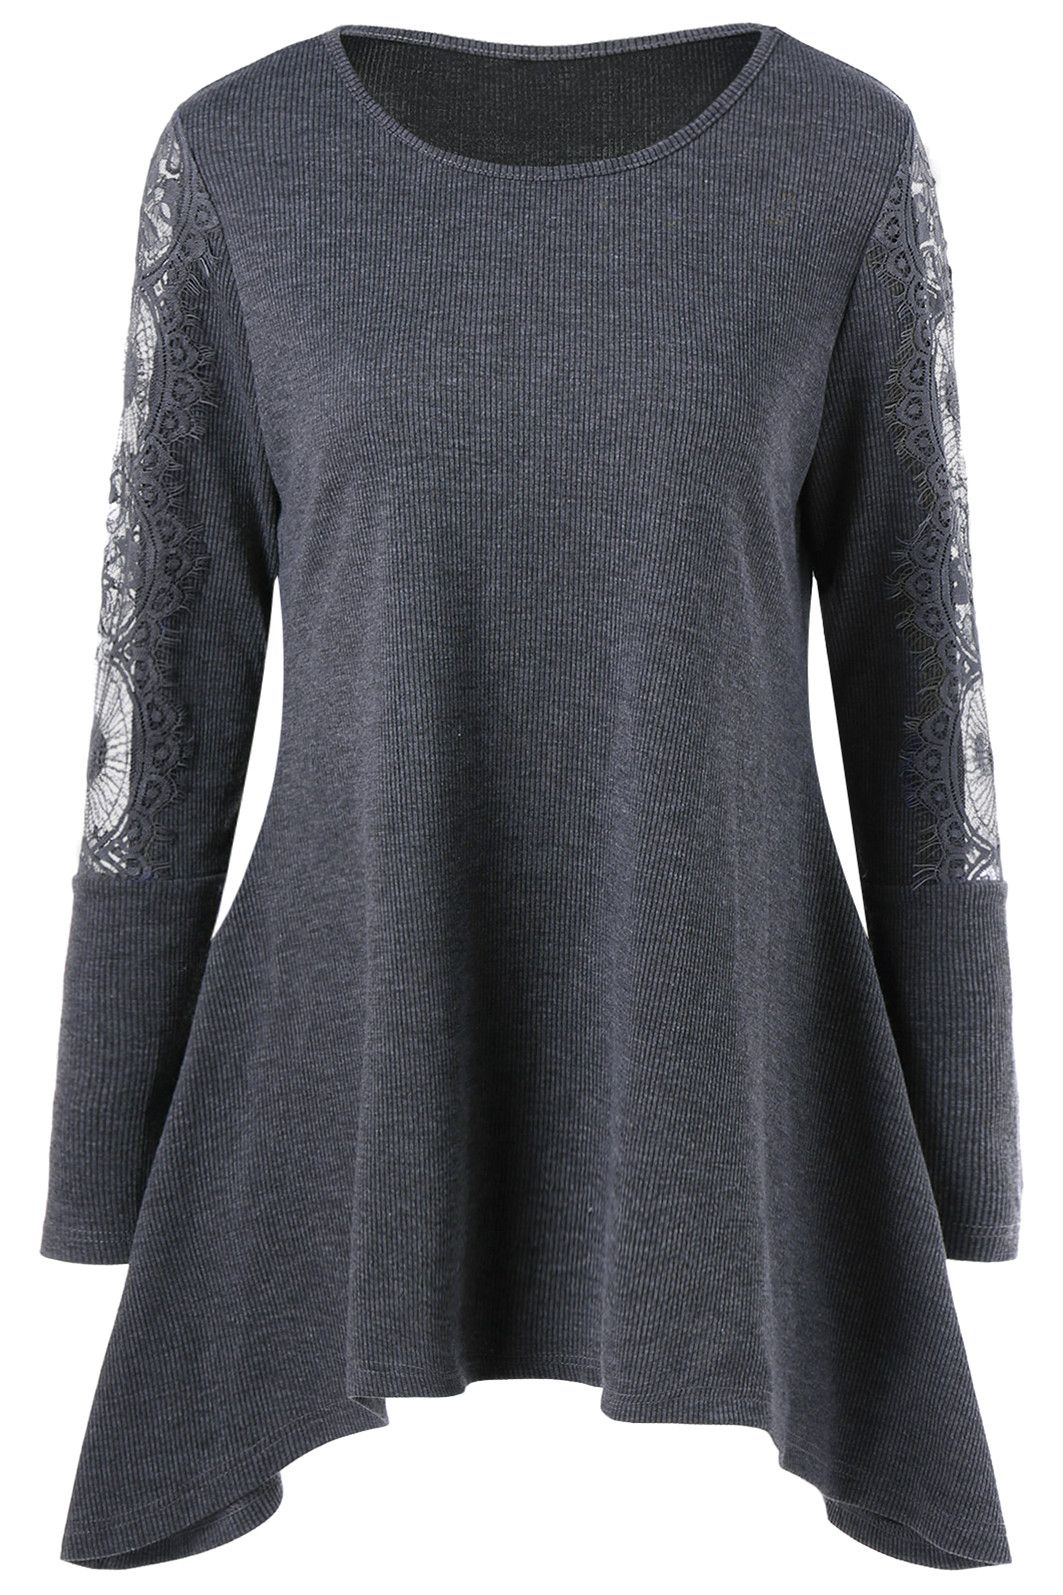 lace insert tunic knitwear long sleeve casual top